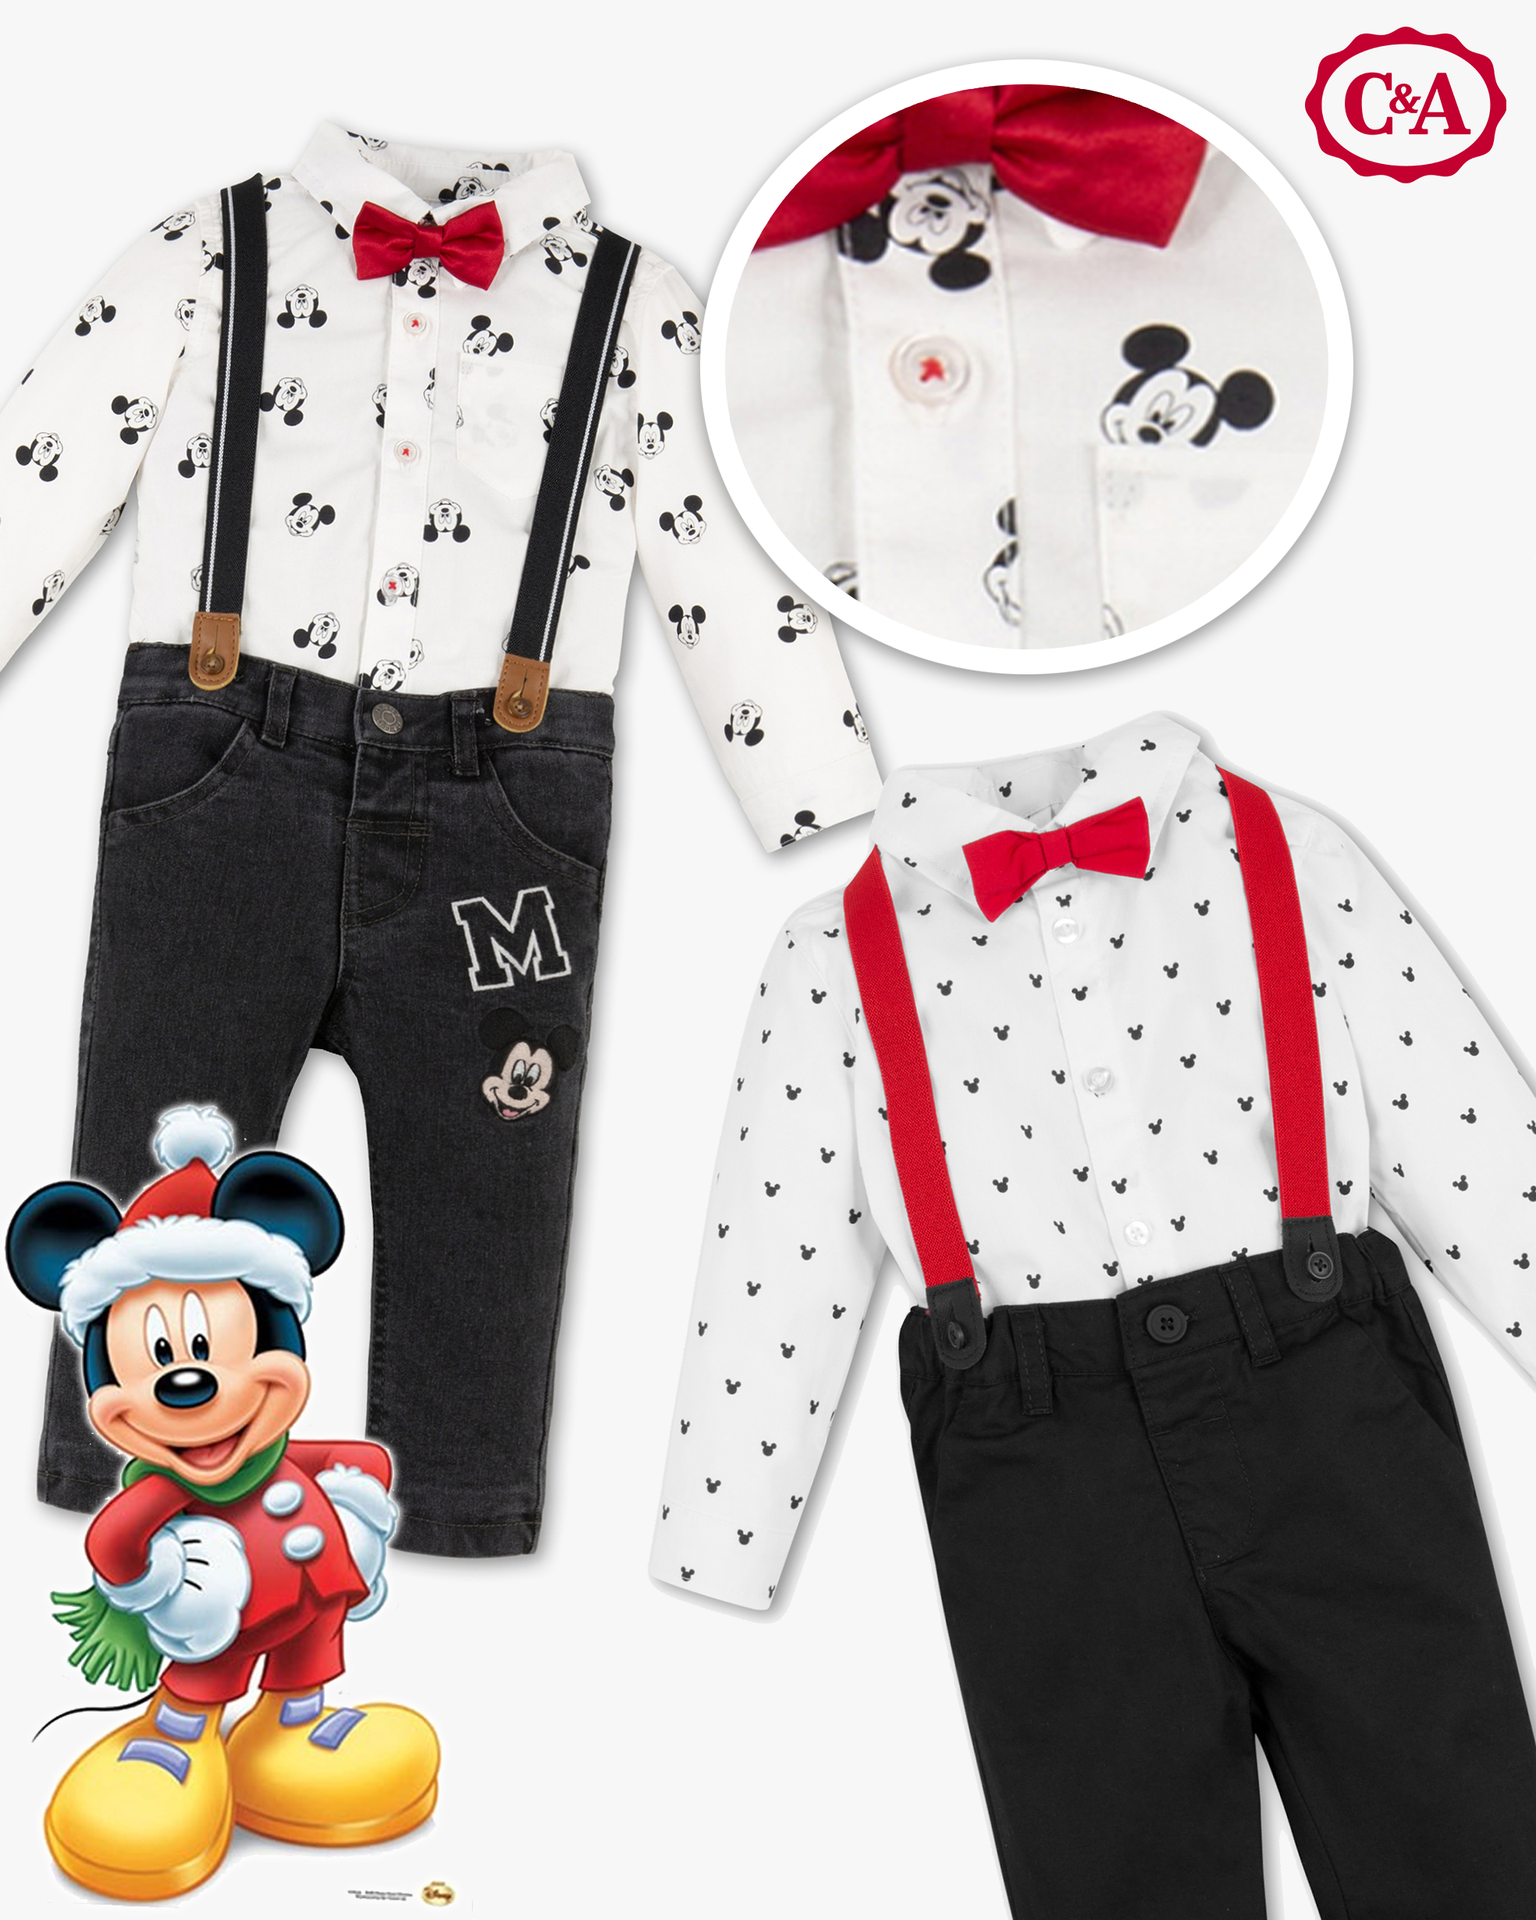 mehrfaches Micky Maus Outfit